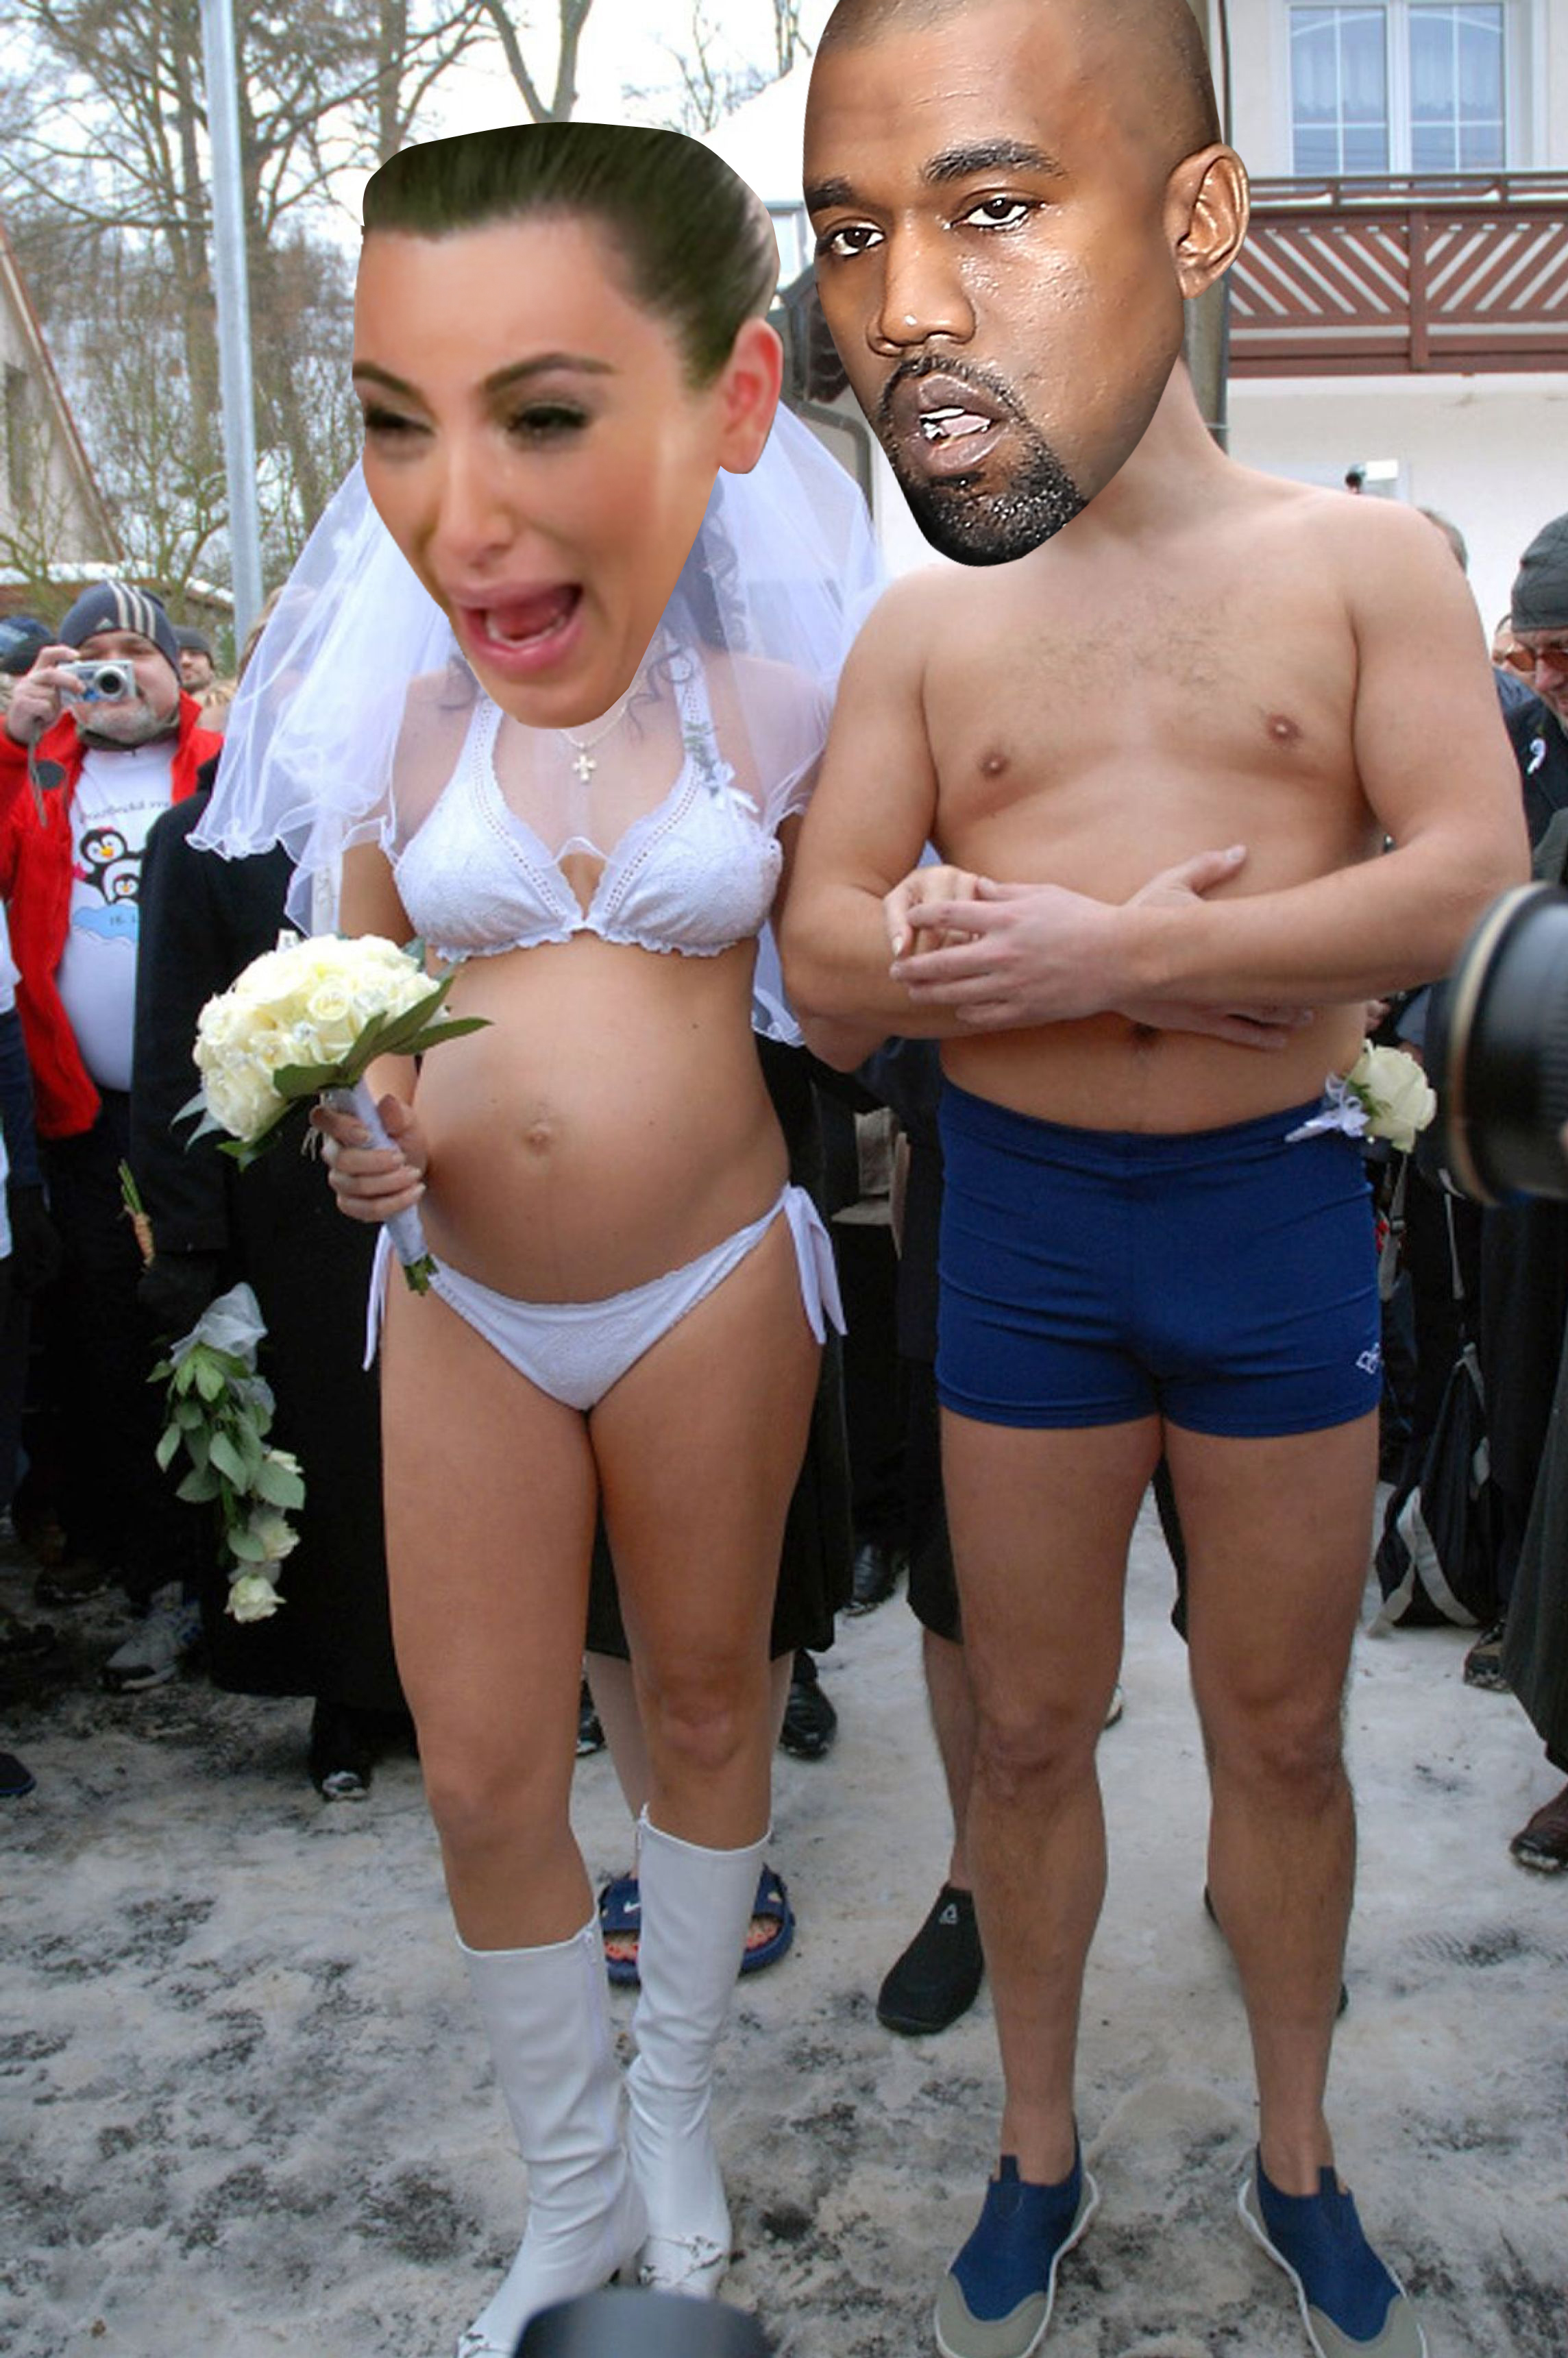 Kimye wedding: LIVE BLOG